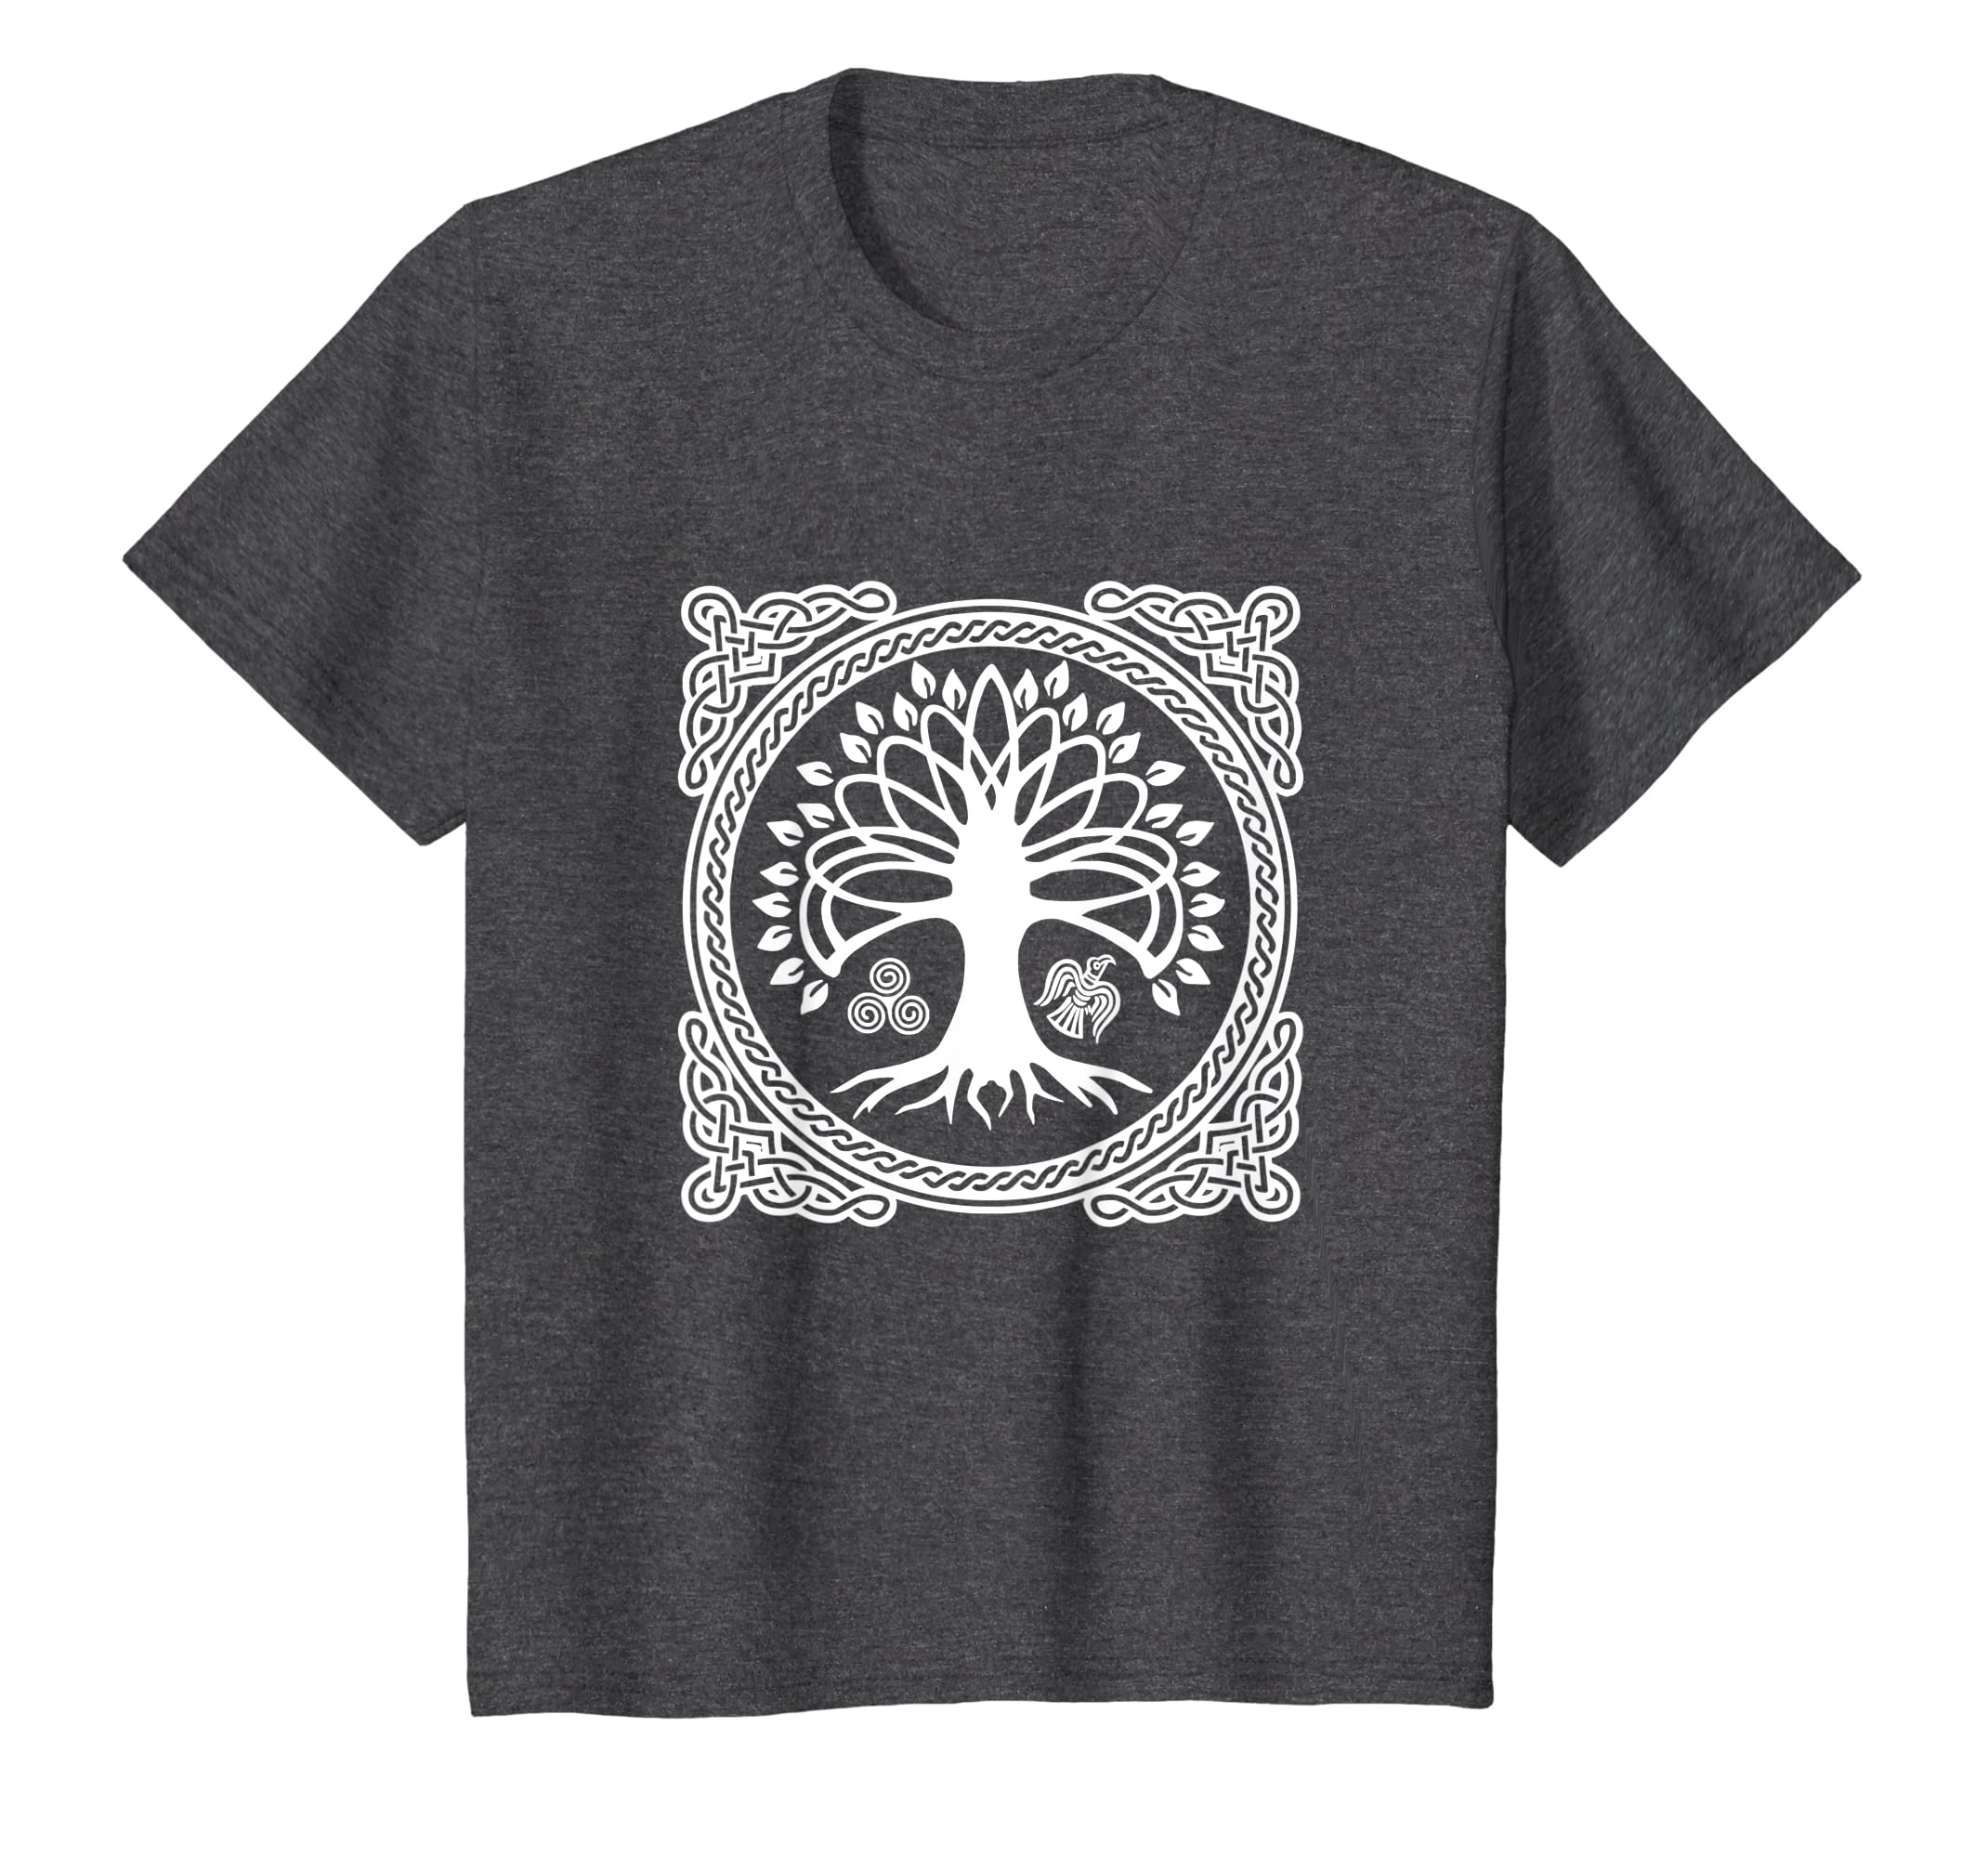 276bfe019f2 Amazon.com: Viking Tree Of Life Gift Shirt Norse Mythology Valhalla Tee:  Clothing